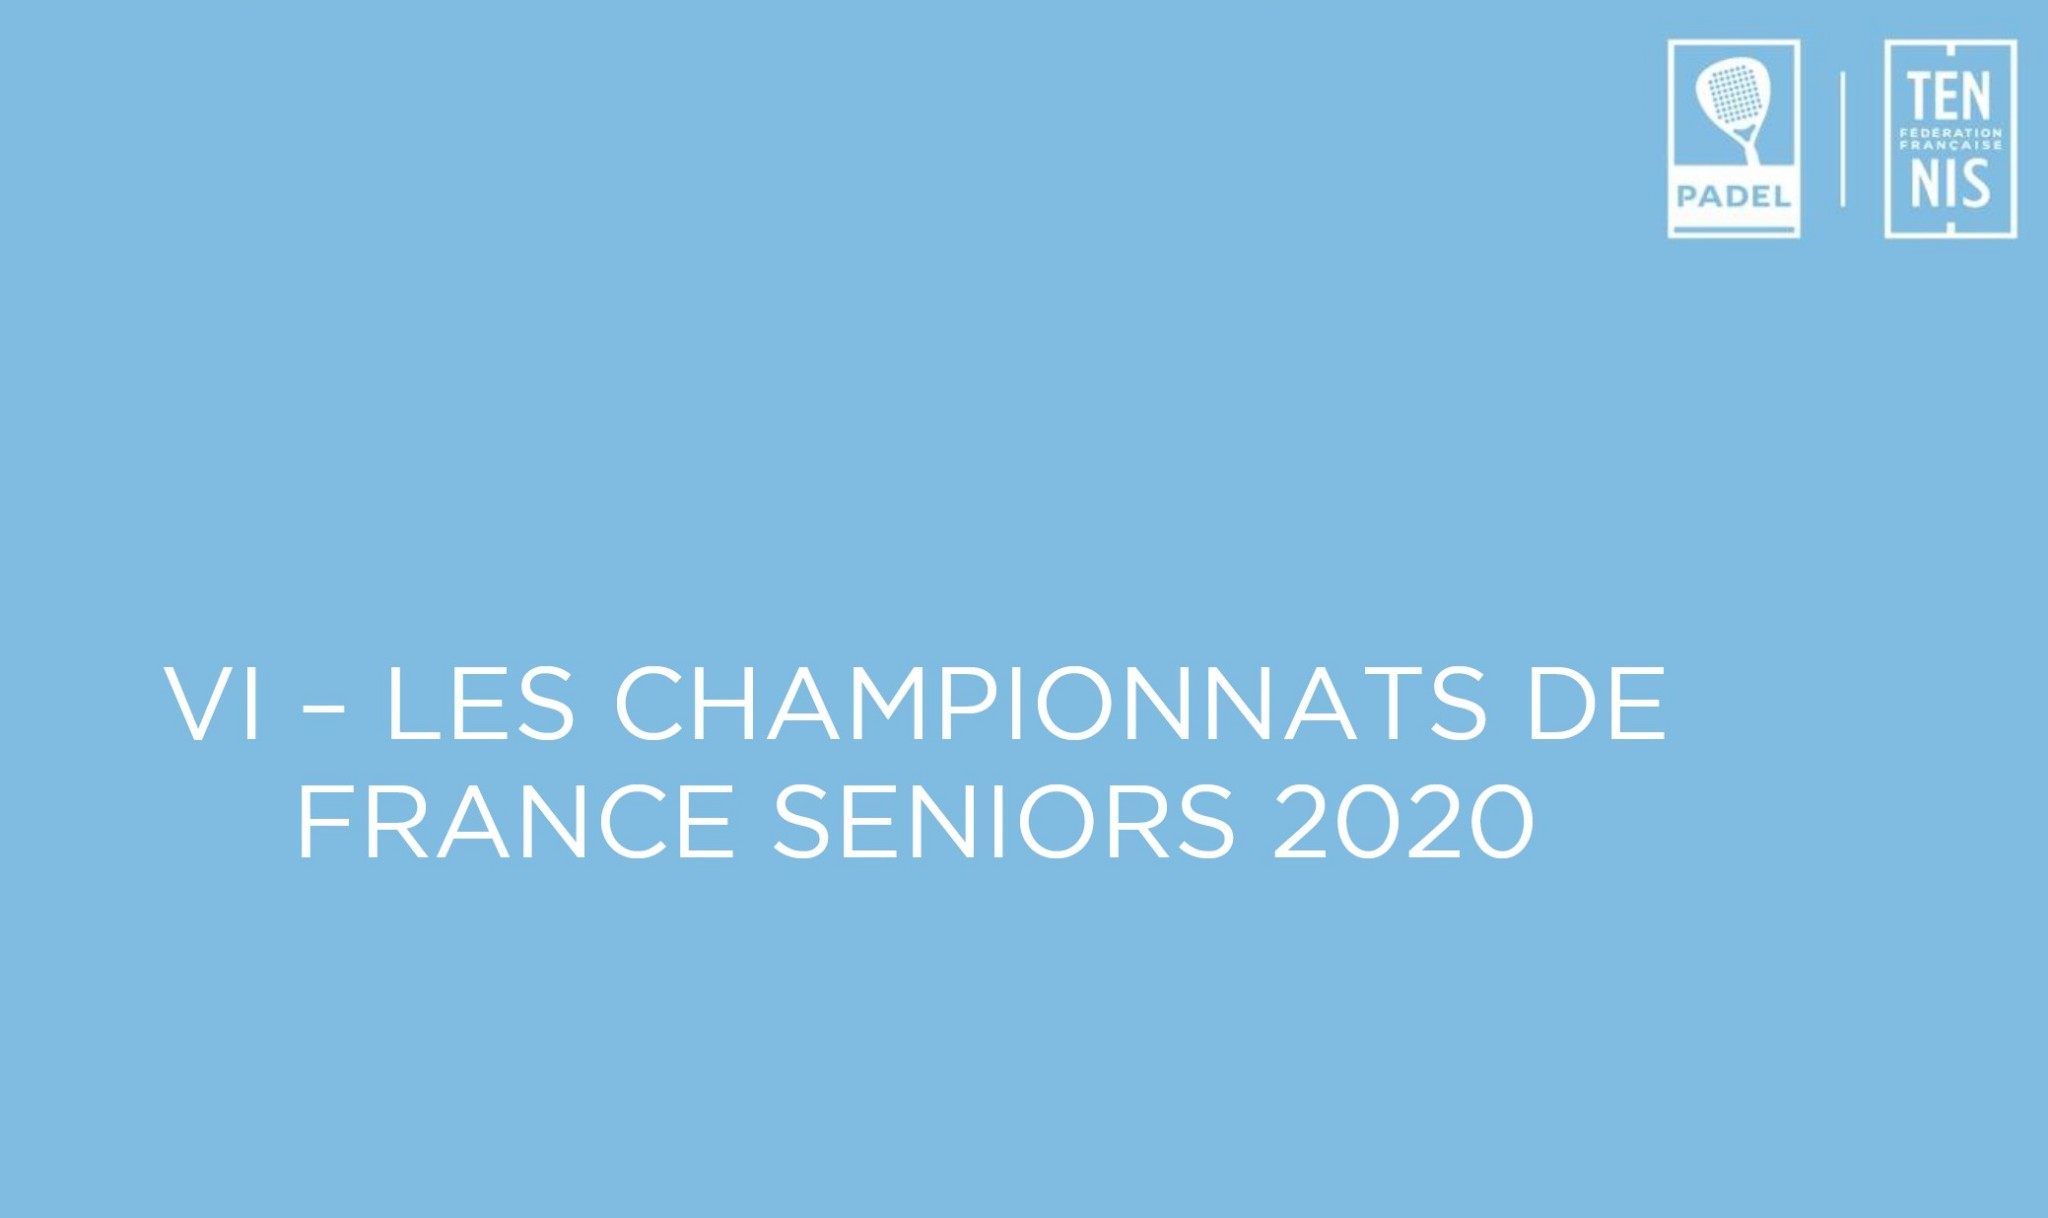 2020 French Senior Padel Championships